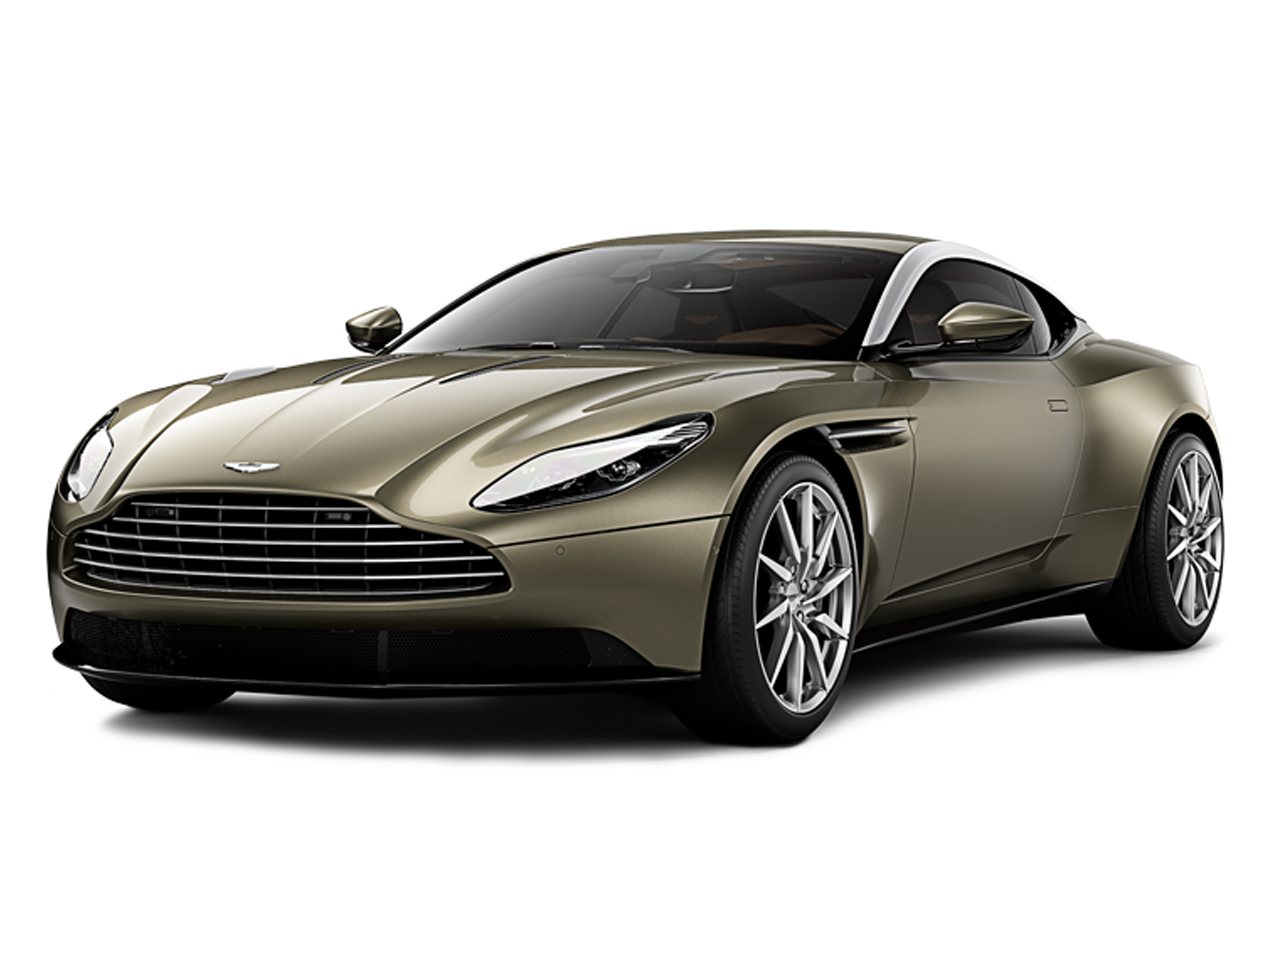 2017 aston martin db11 prices in uae gulf specs reviews for dubai abu dhabi and sharjah. Black Bedroom Furniture Sets. Home Design Ideas